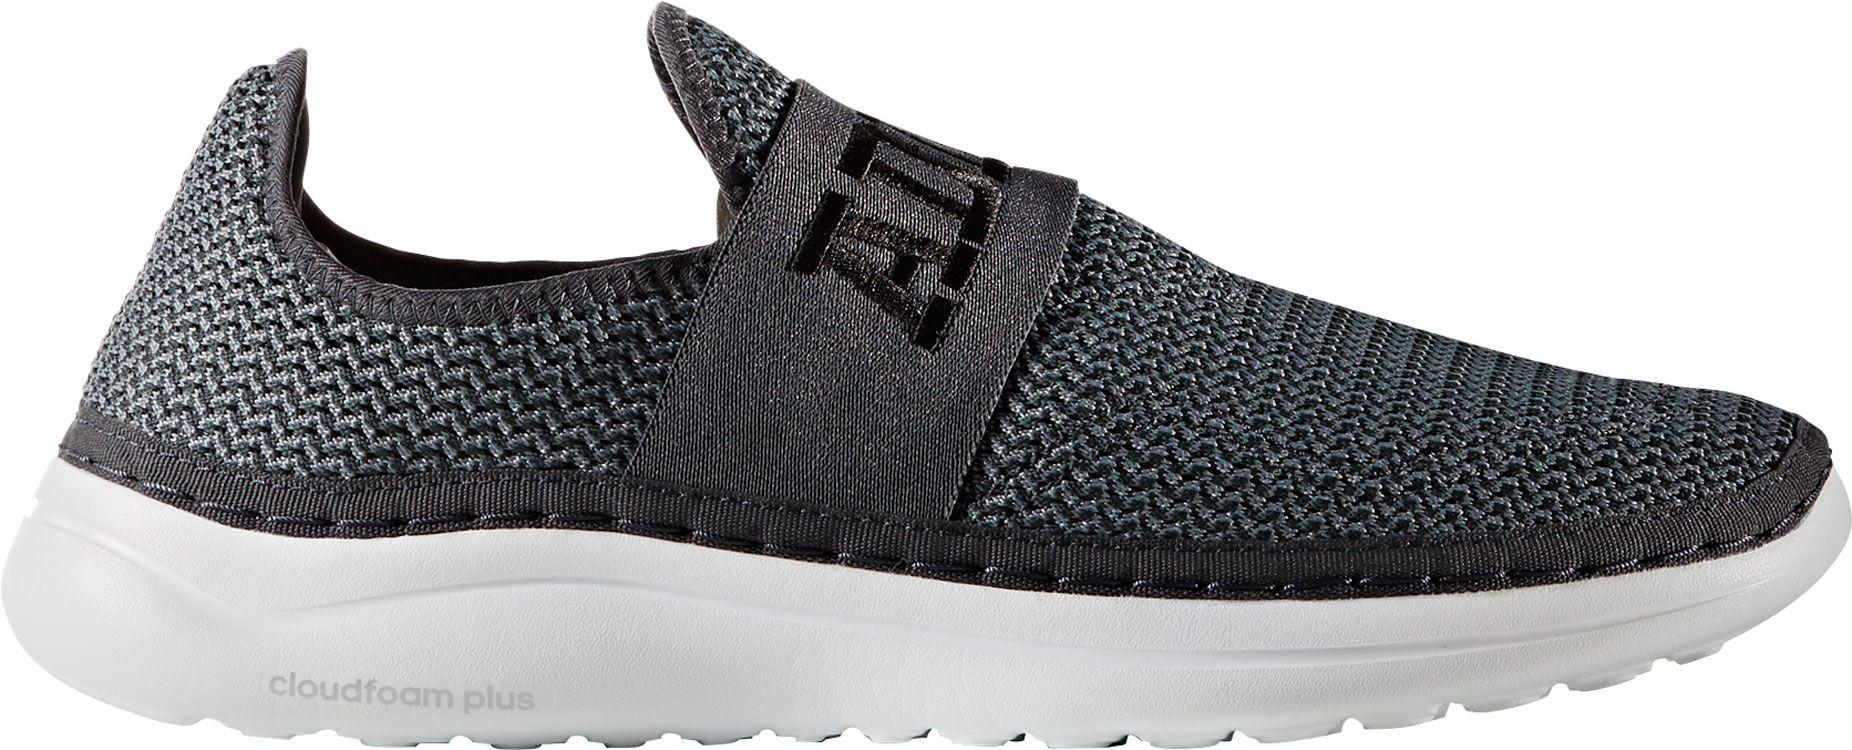 Lyst - adidas Cloudfoam Plus Zen Recovery Shoes in Black for Men 31c7fde87